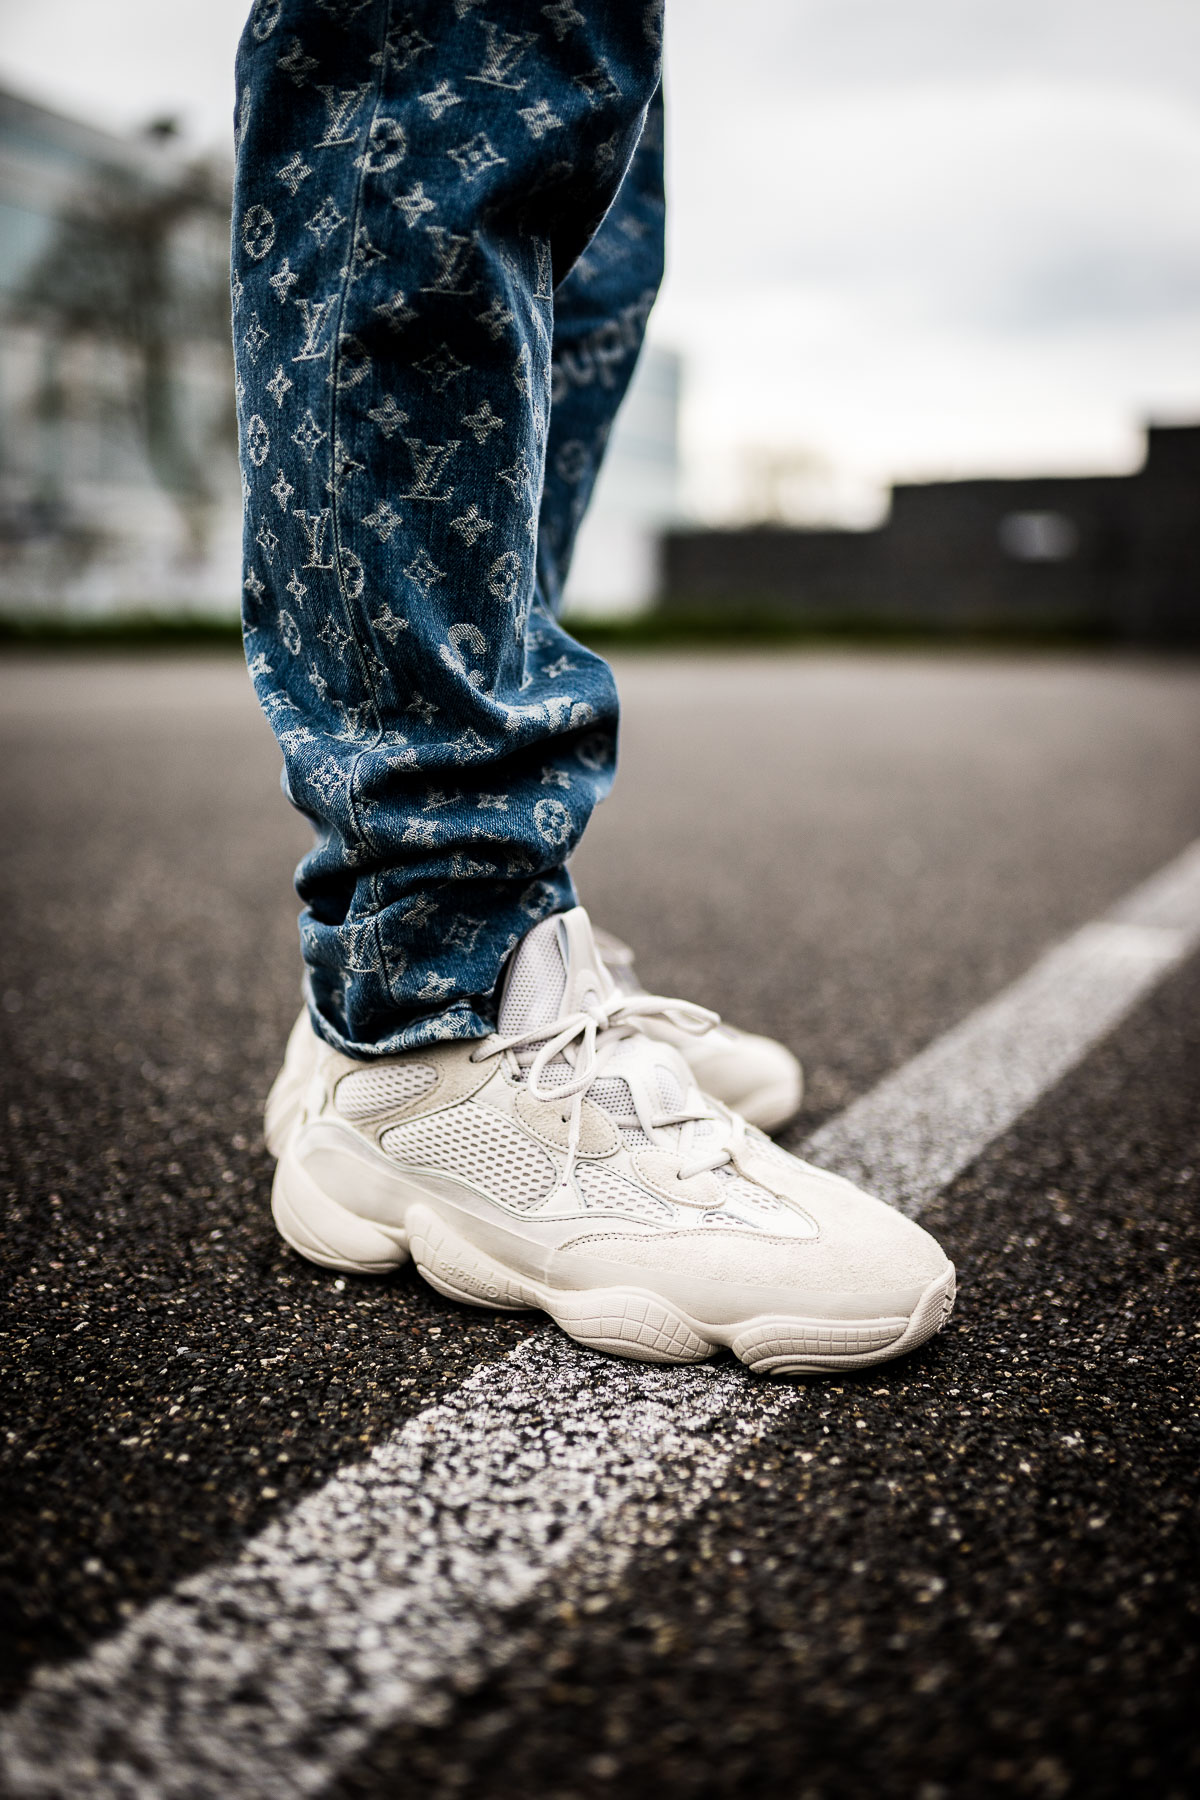 reputable site d9e11 b6dbd adidas Yeezy 500 Blush - on feet | Dead Stock